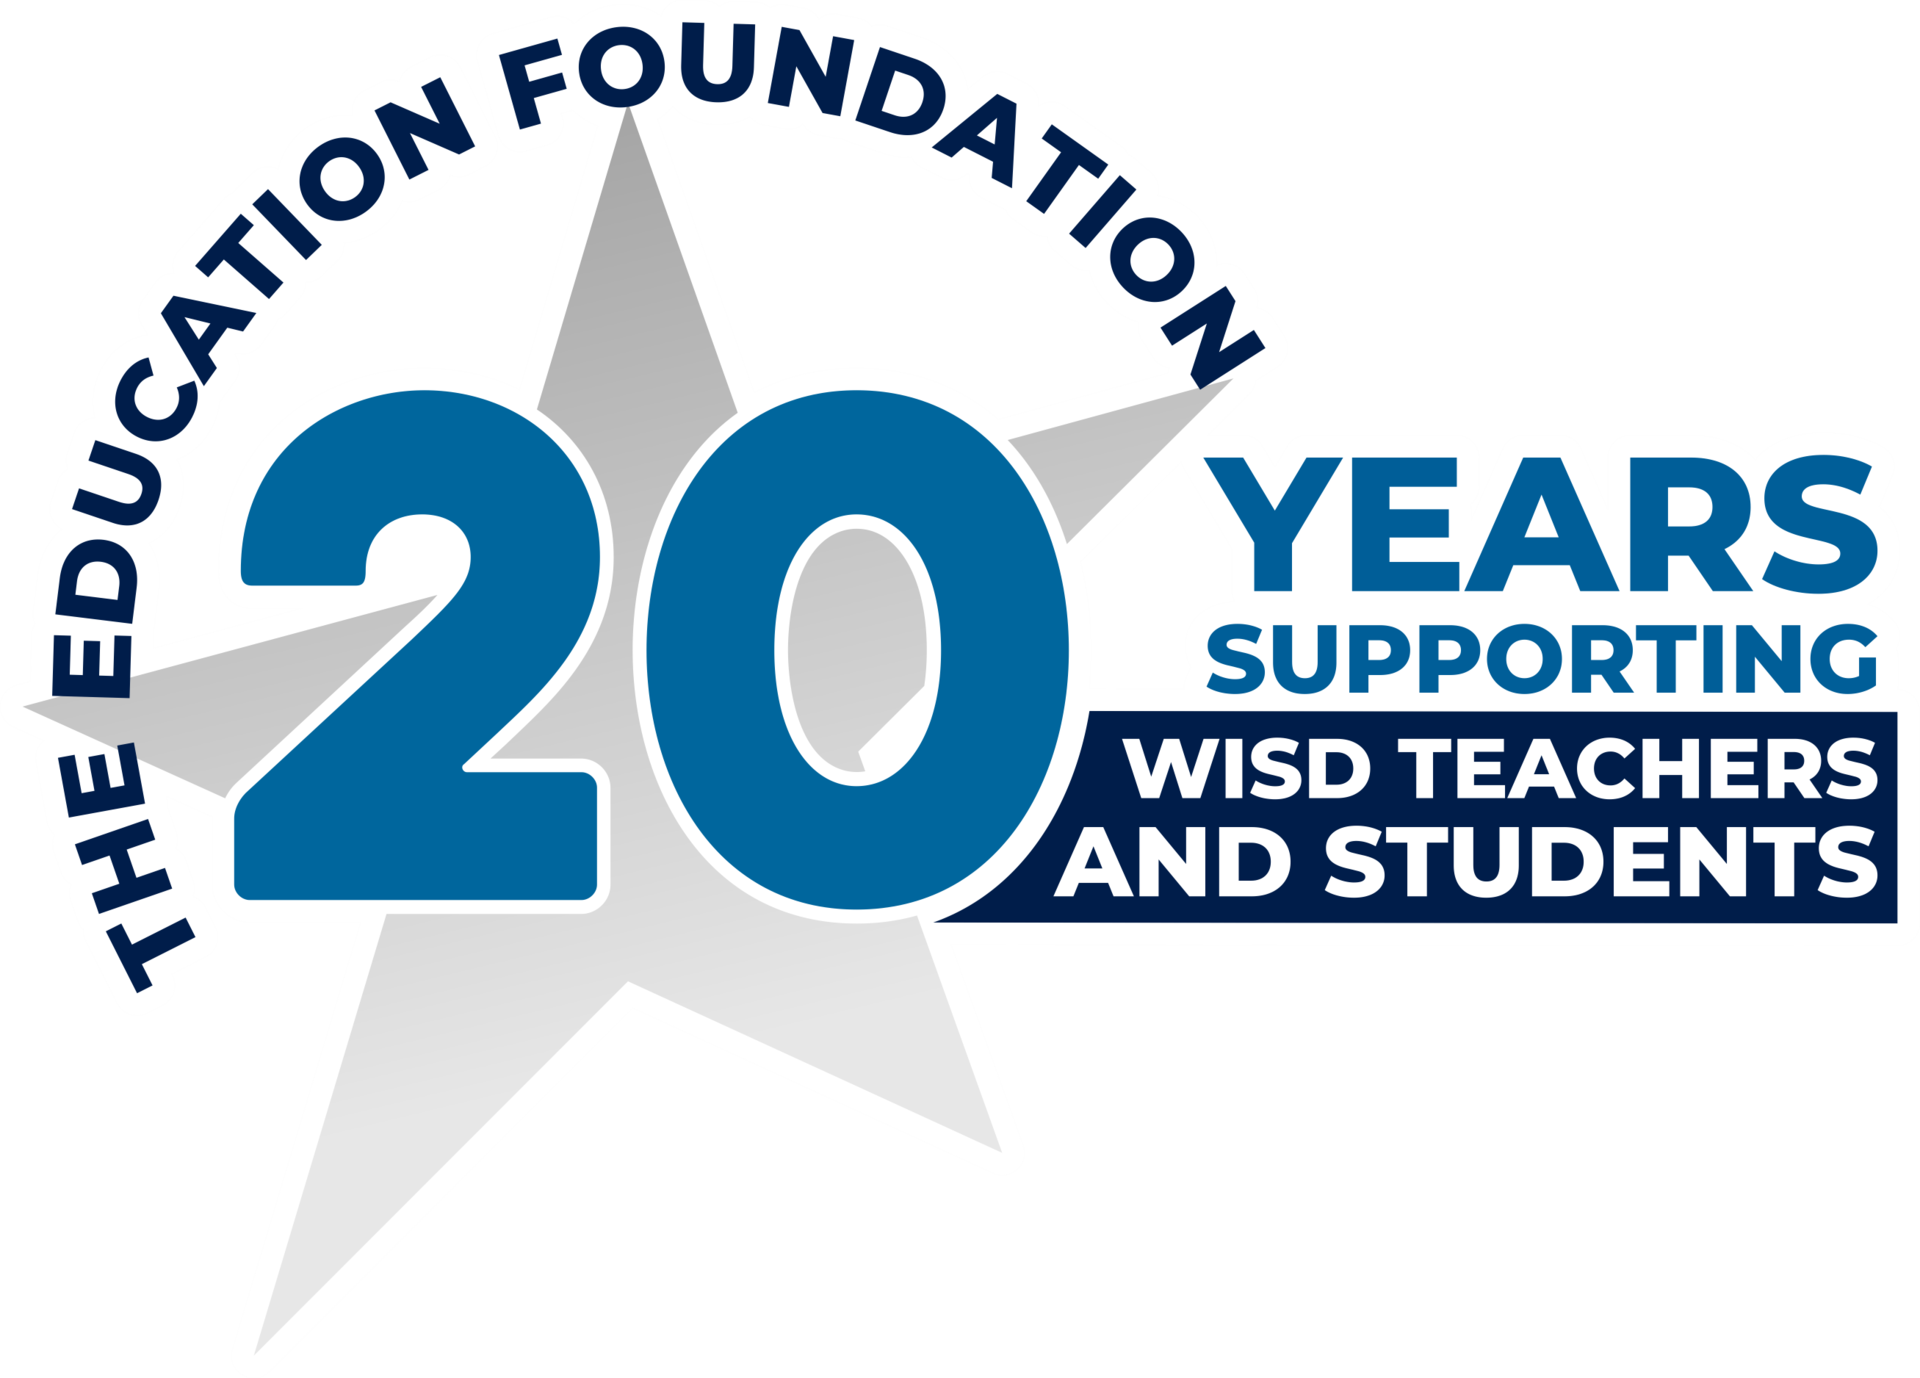 WISD Education Foundation 20 year logo